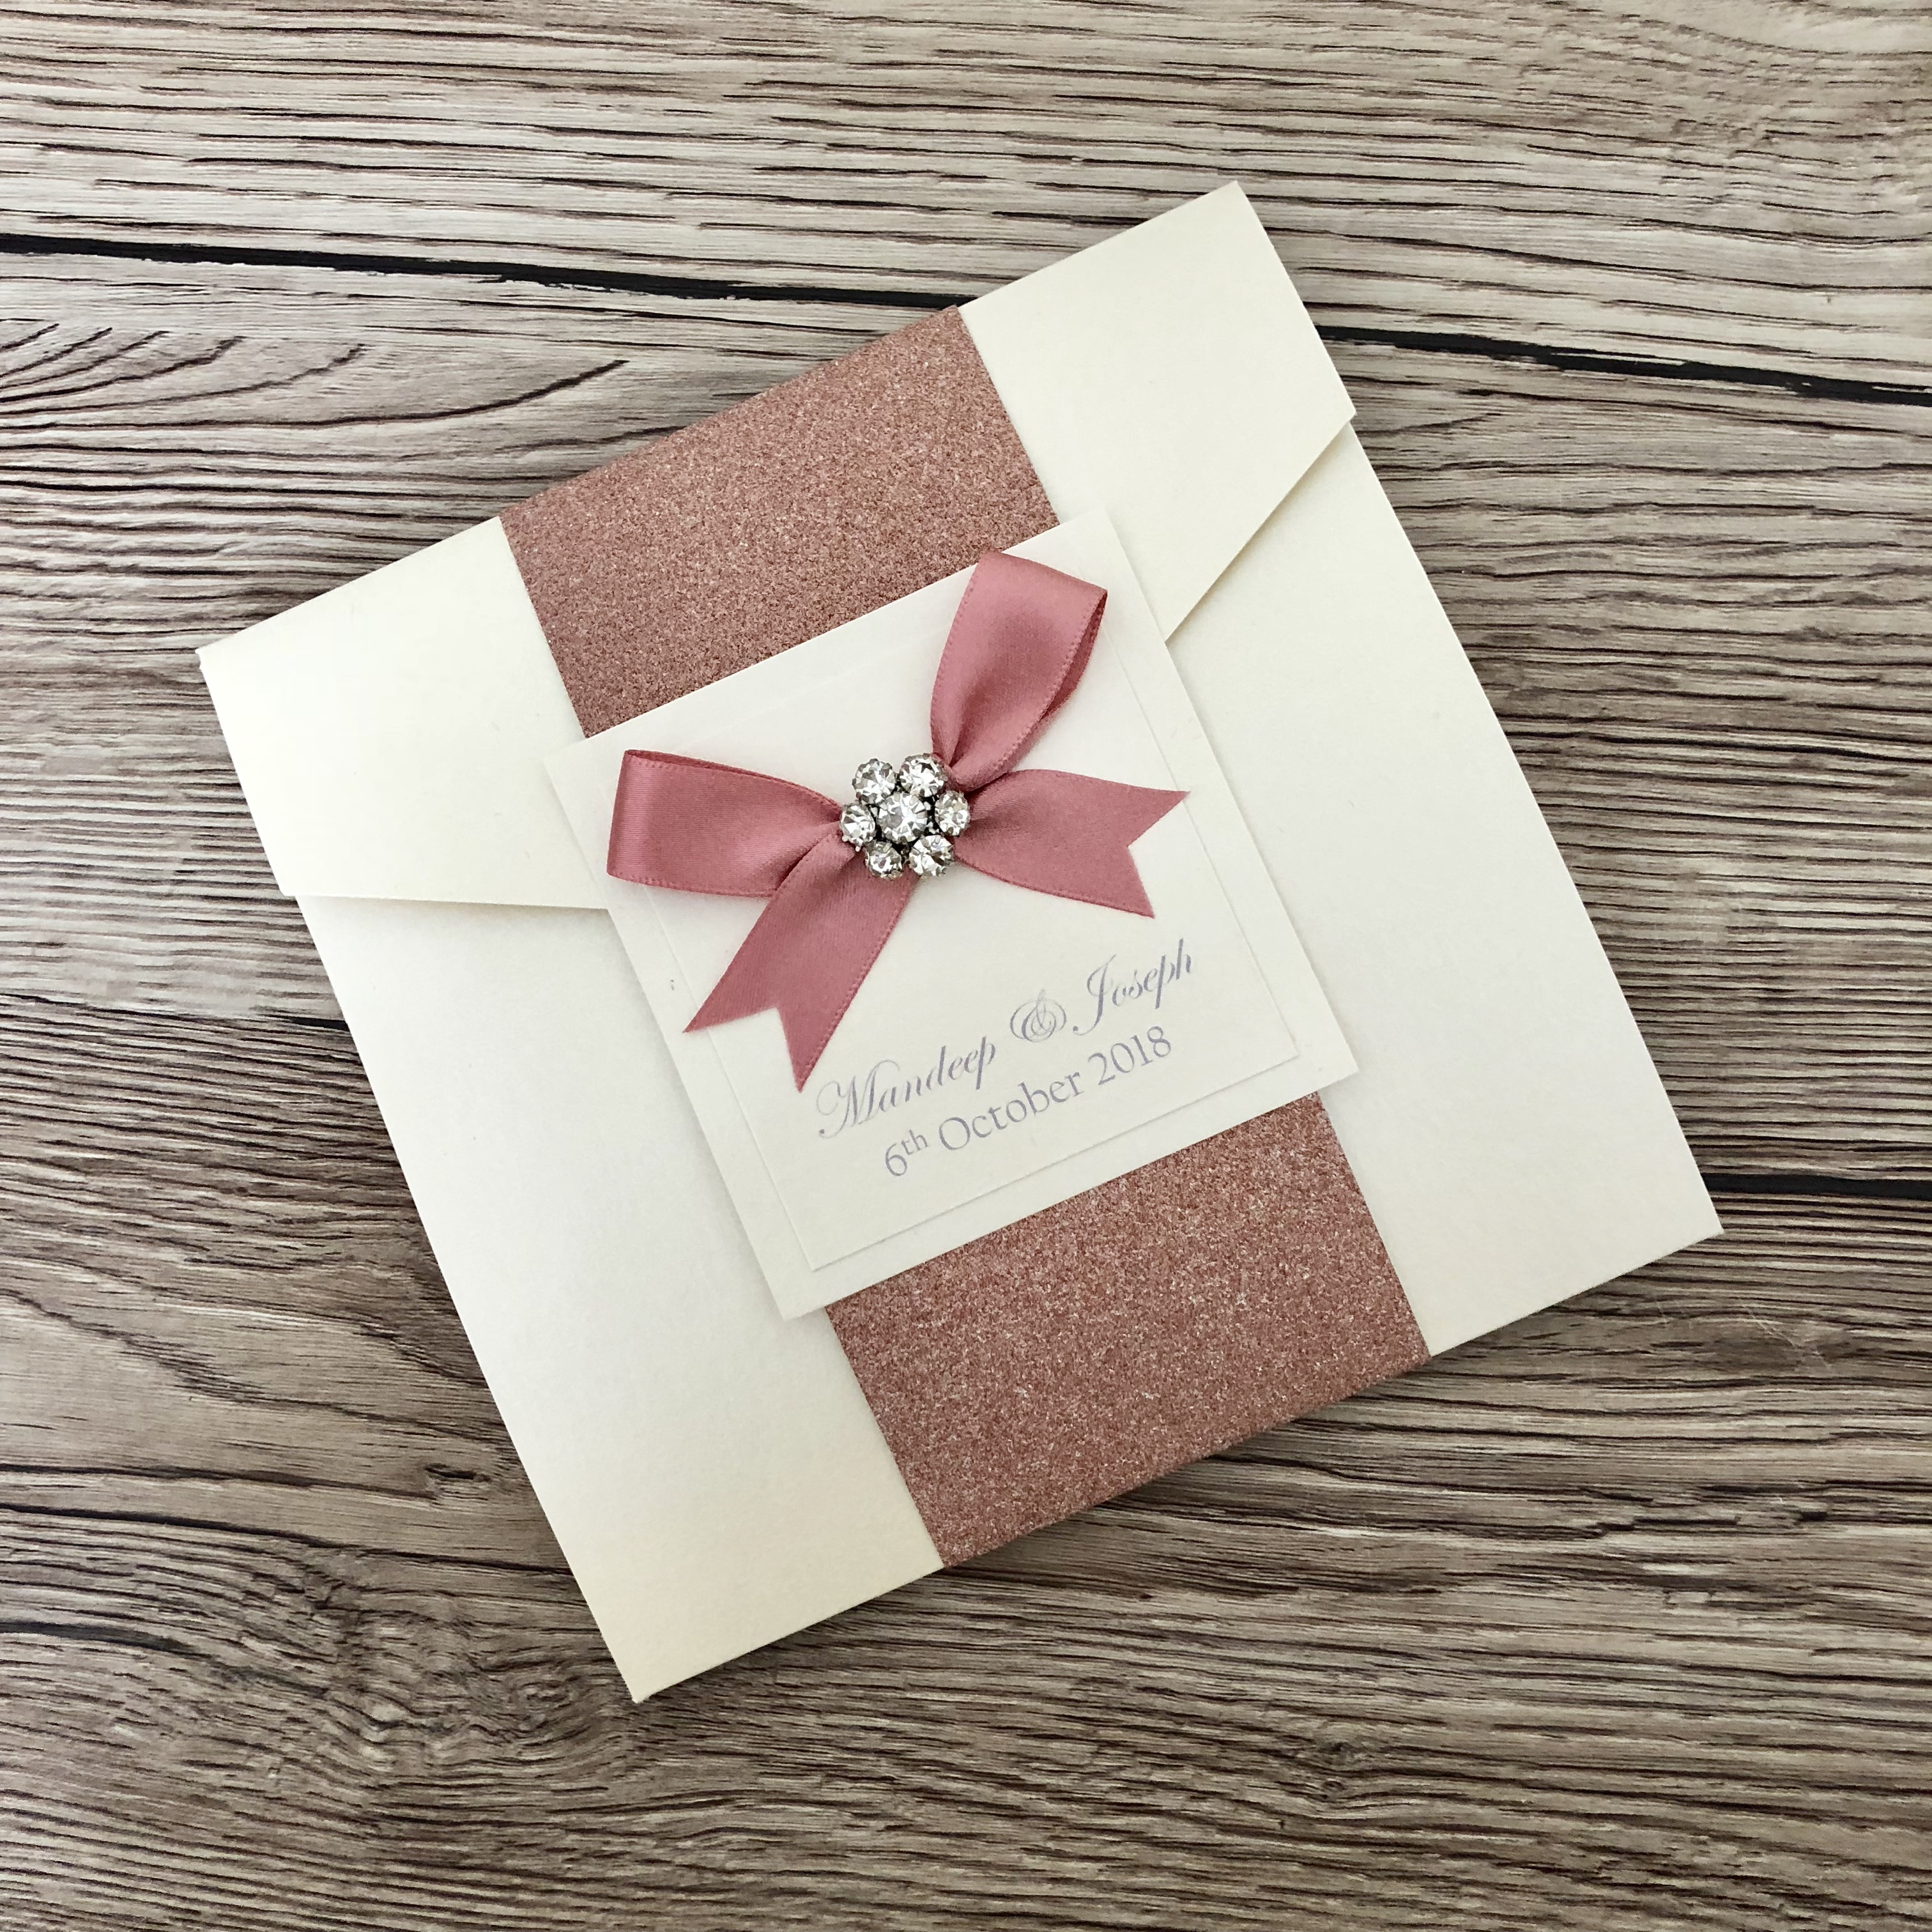 Most Expensive Wedding Invitations: Why Are Wedding Invitations So Expensive...or Are They